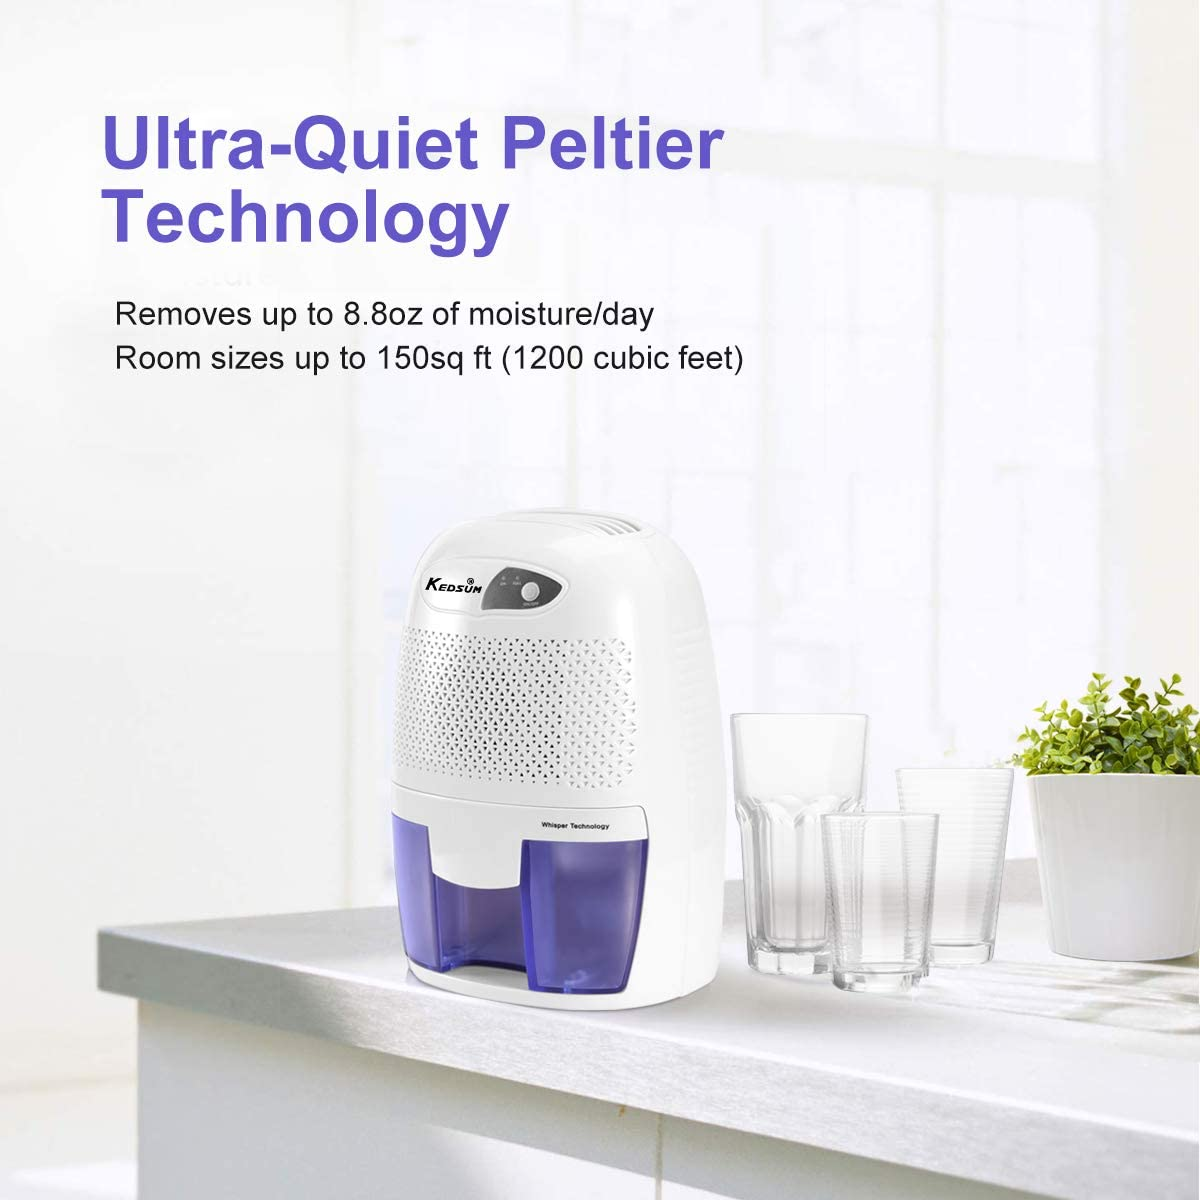 Quietly Extracts Moisture hOmeLabs Small Space Dehumidifier with Auto Shut-Off